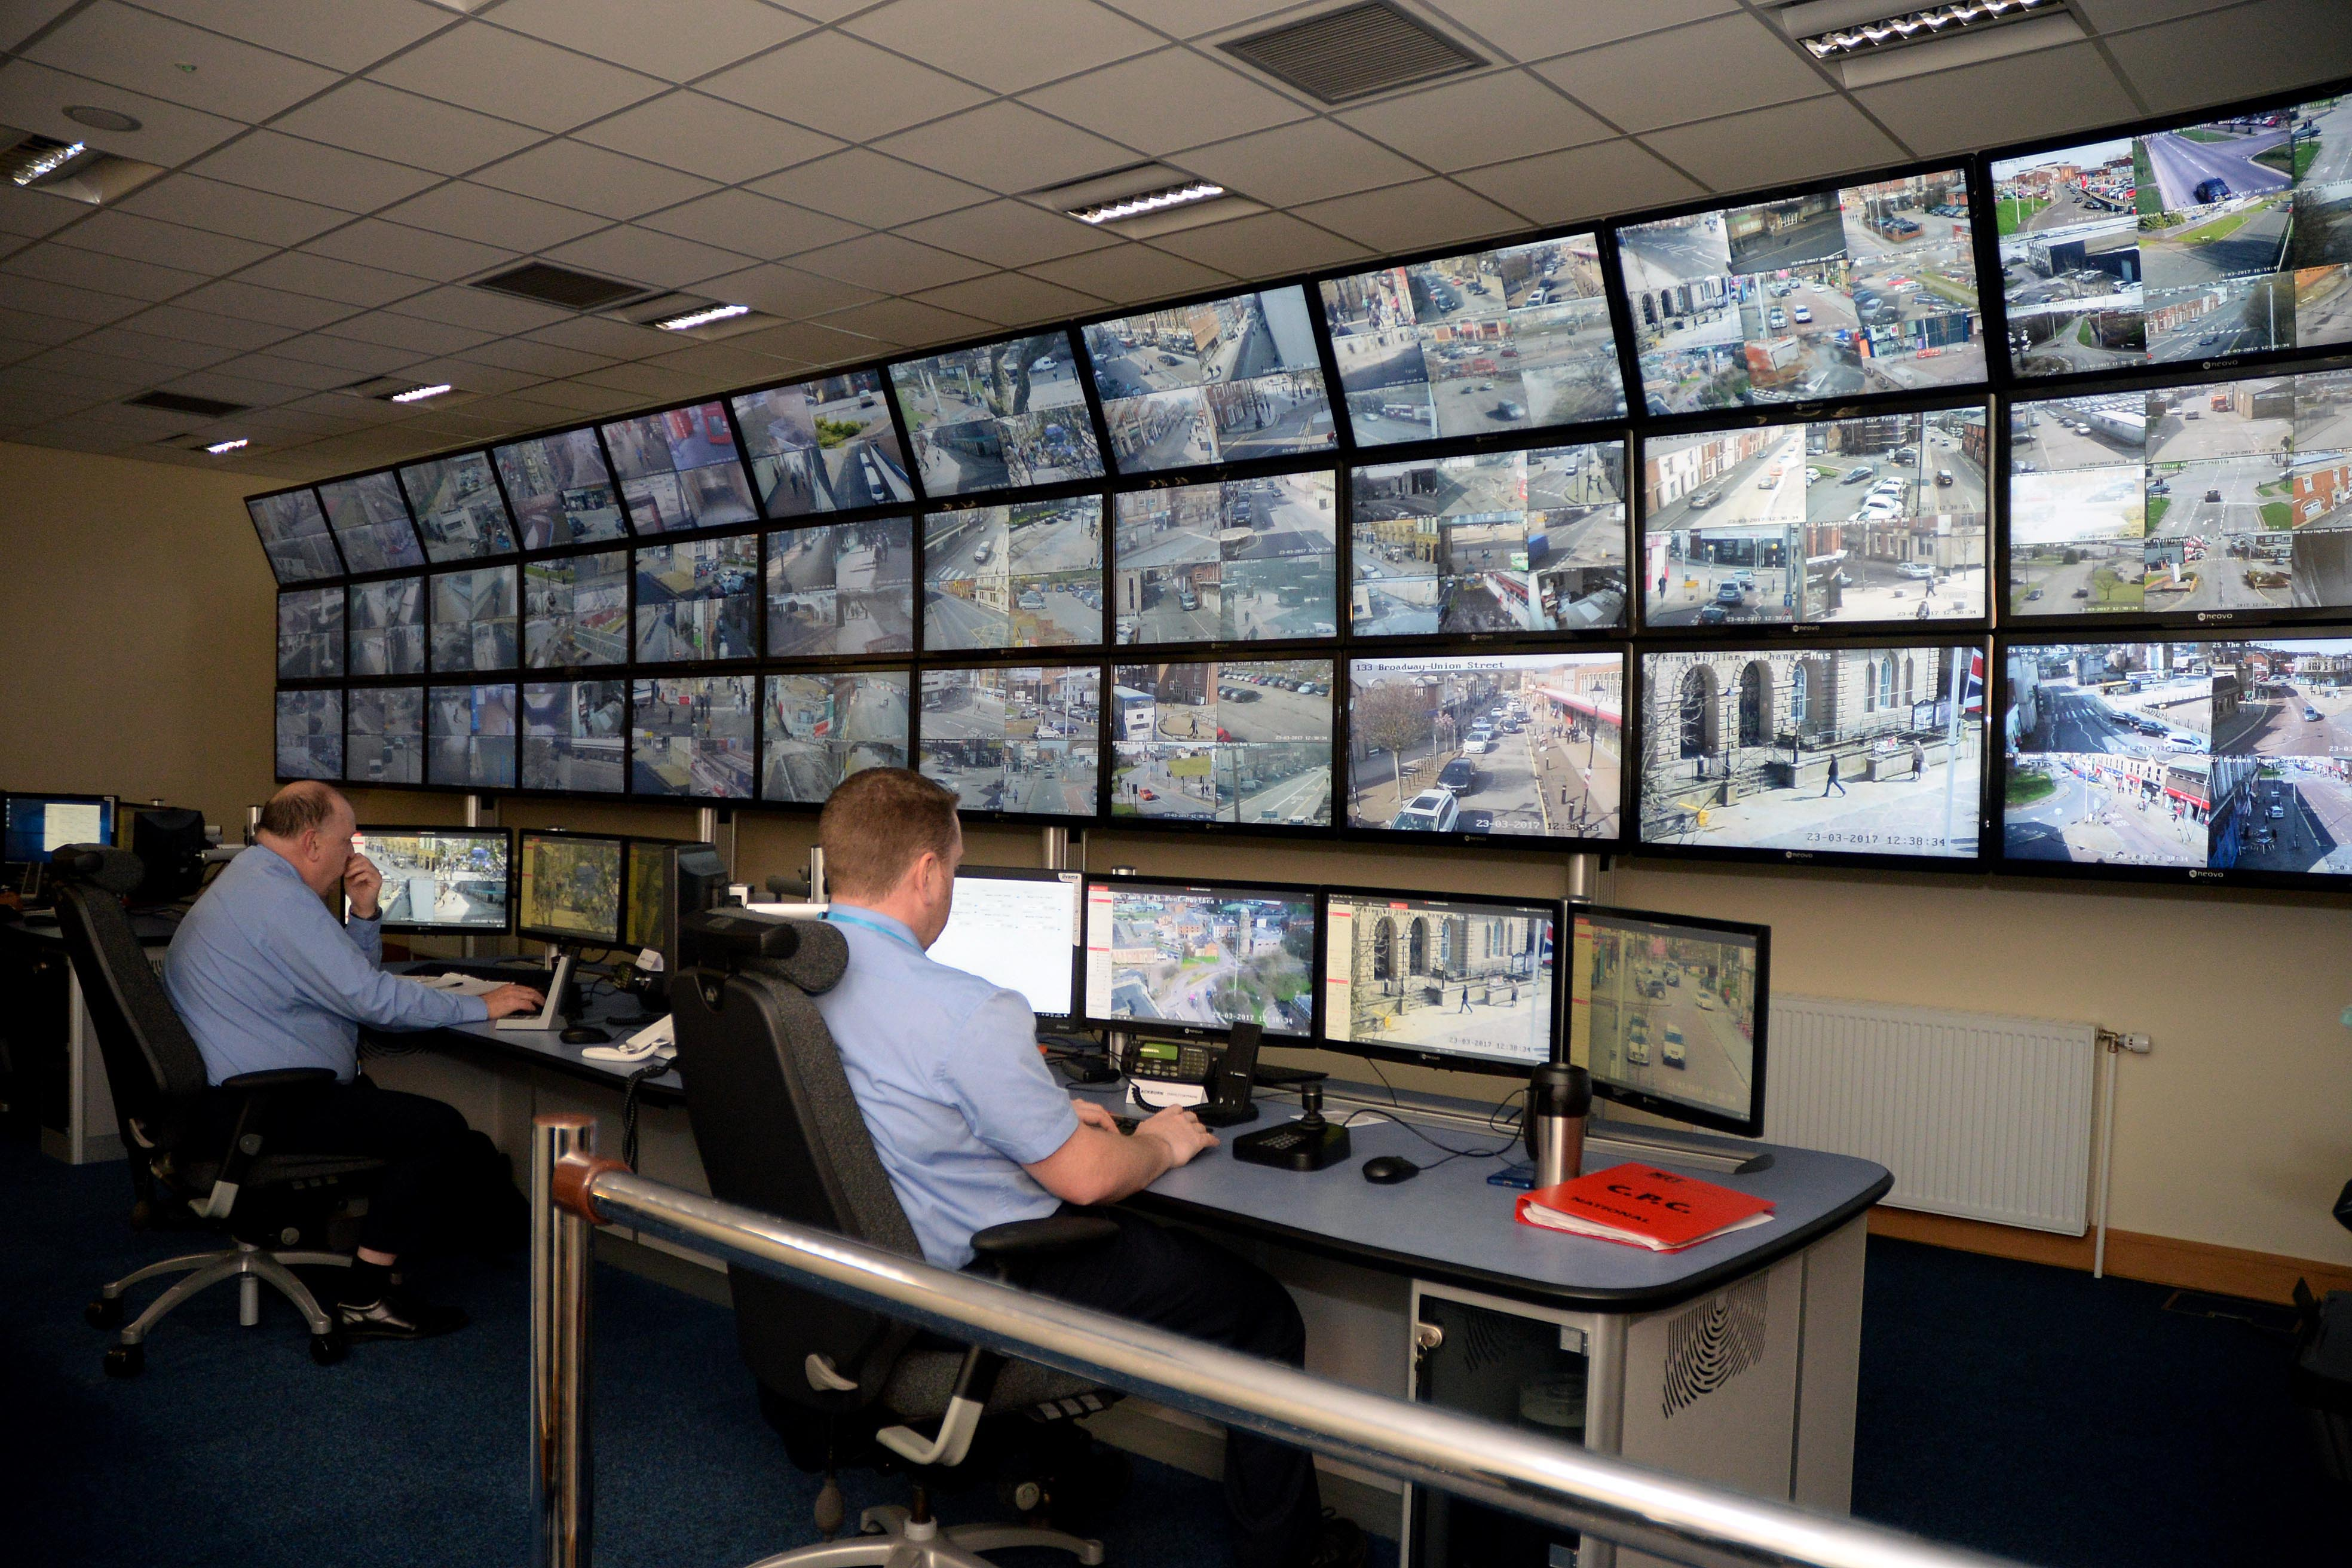 Openview security solutions oss cctv control room hub in for Control room design jobs